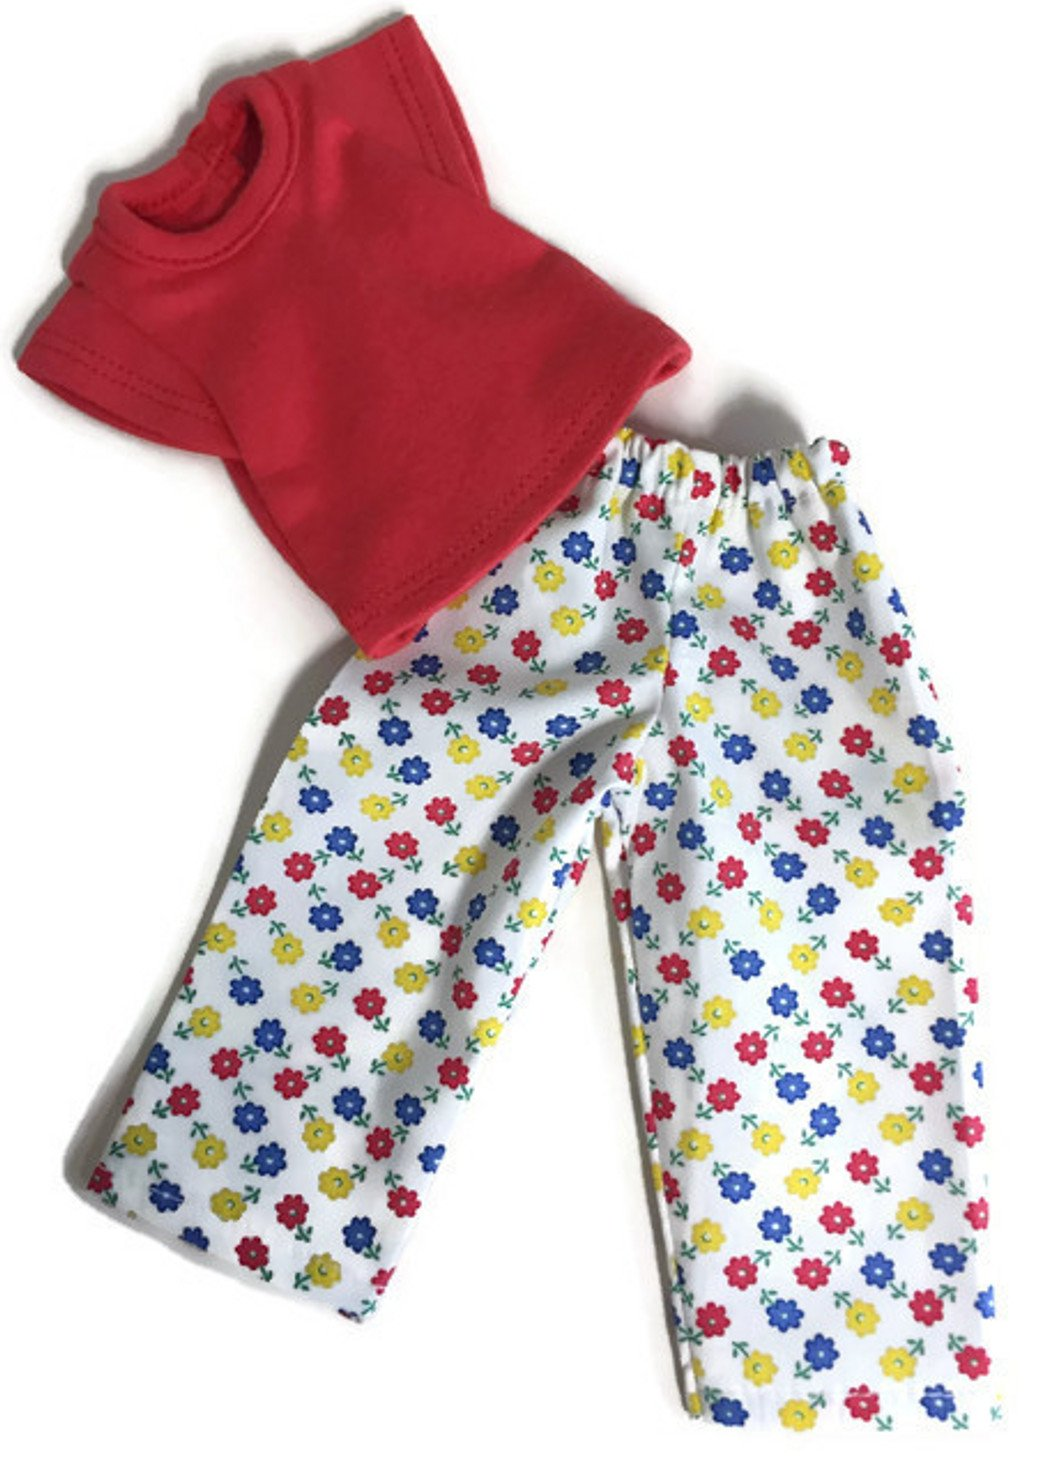 Doris Doll Boutique Red Knit Top and Flower Print Pants for 14 inch American Girl Wellie Wisher Doll China